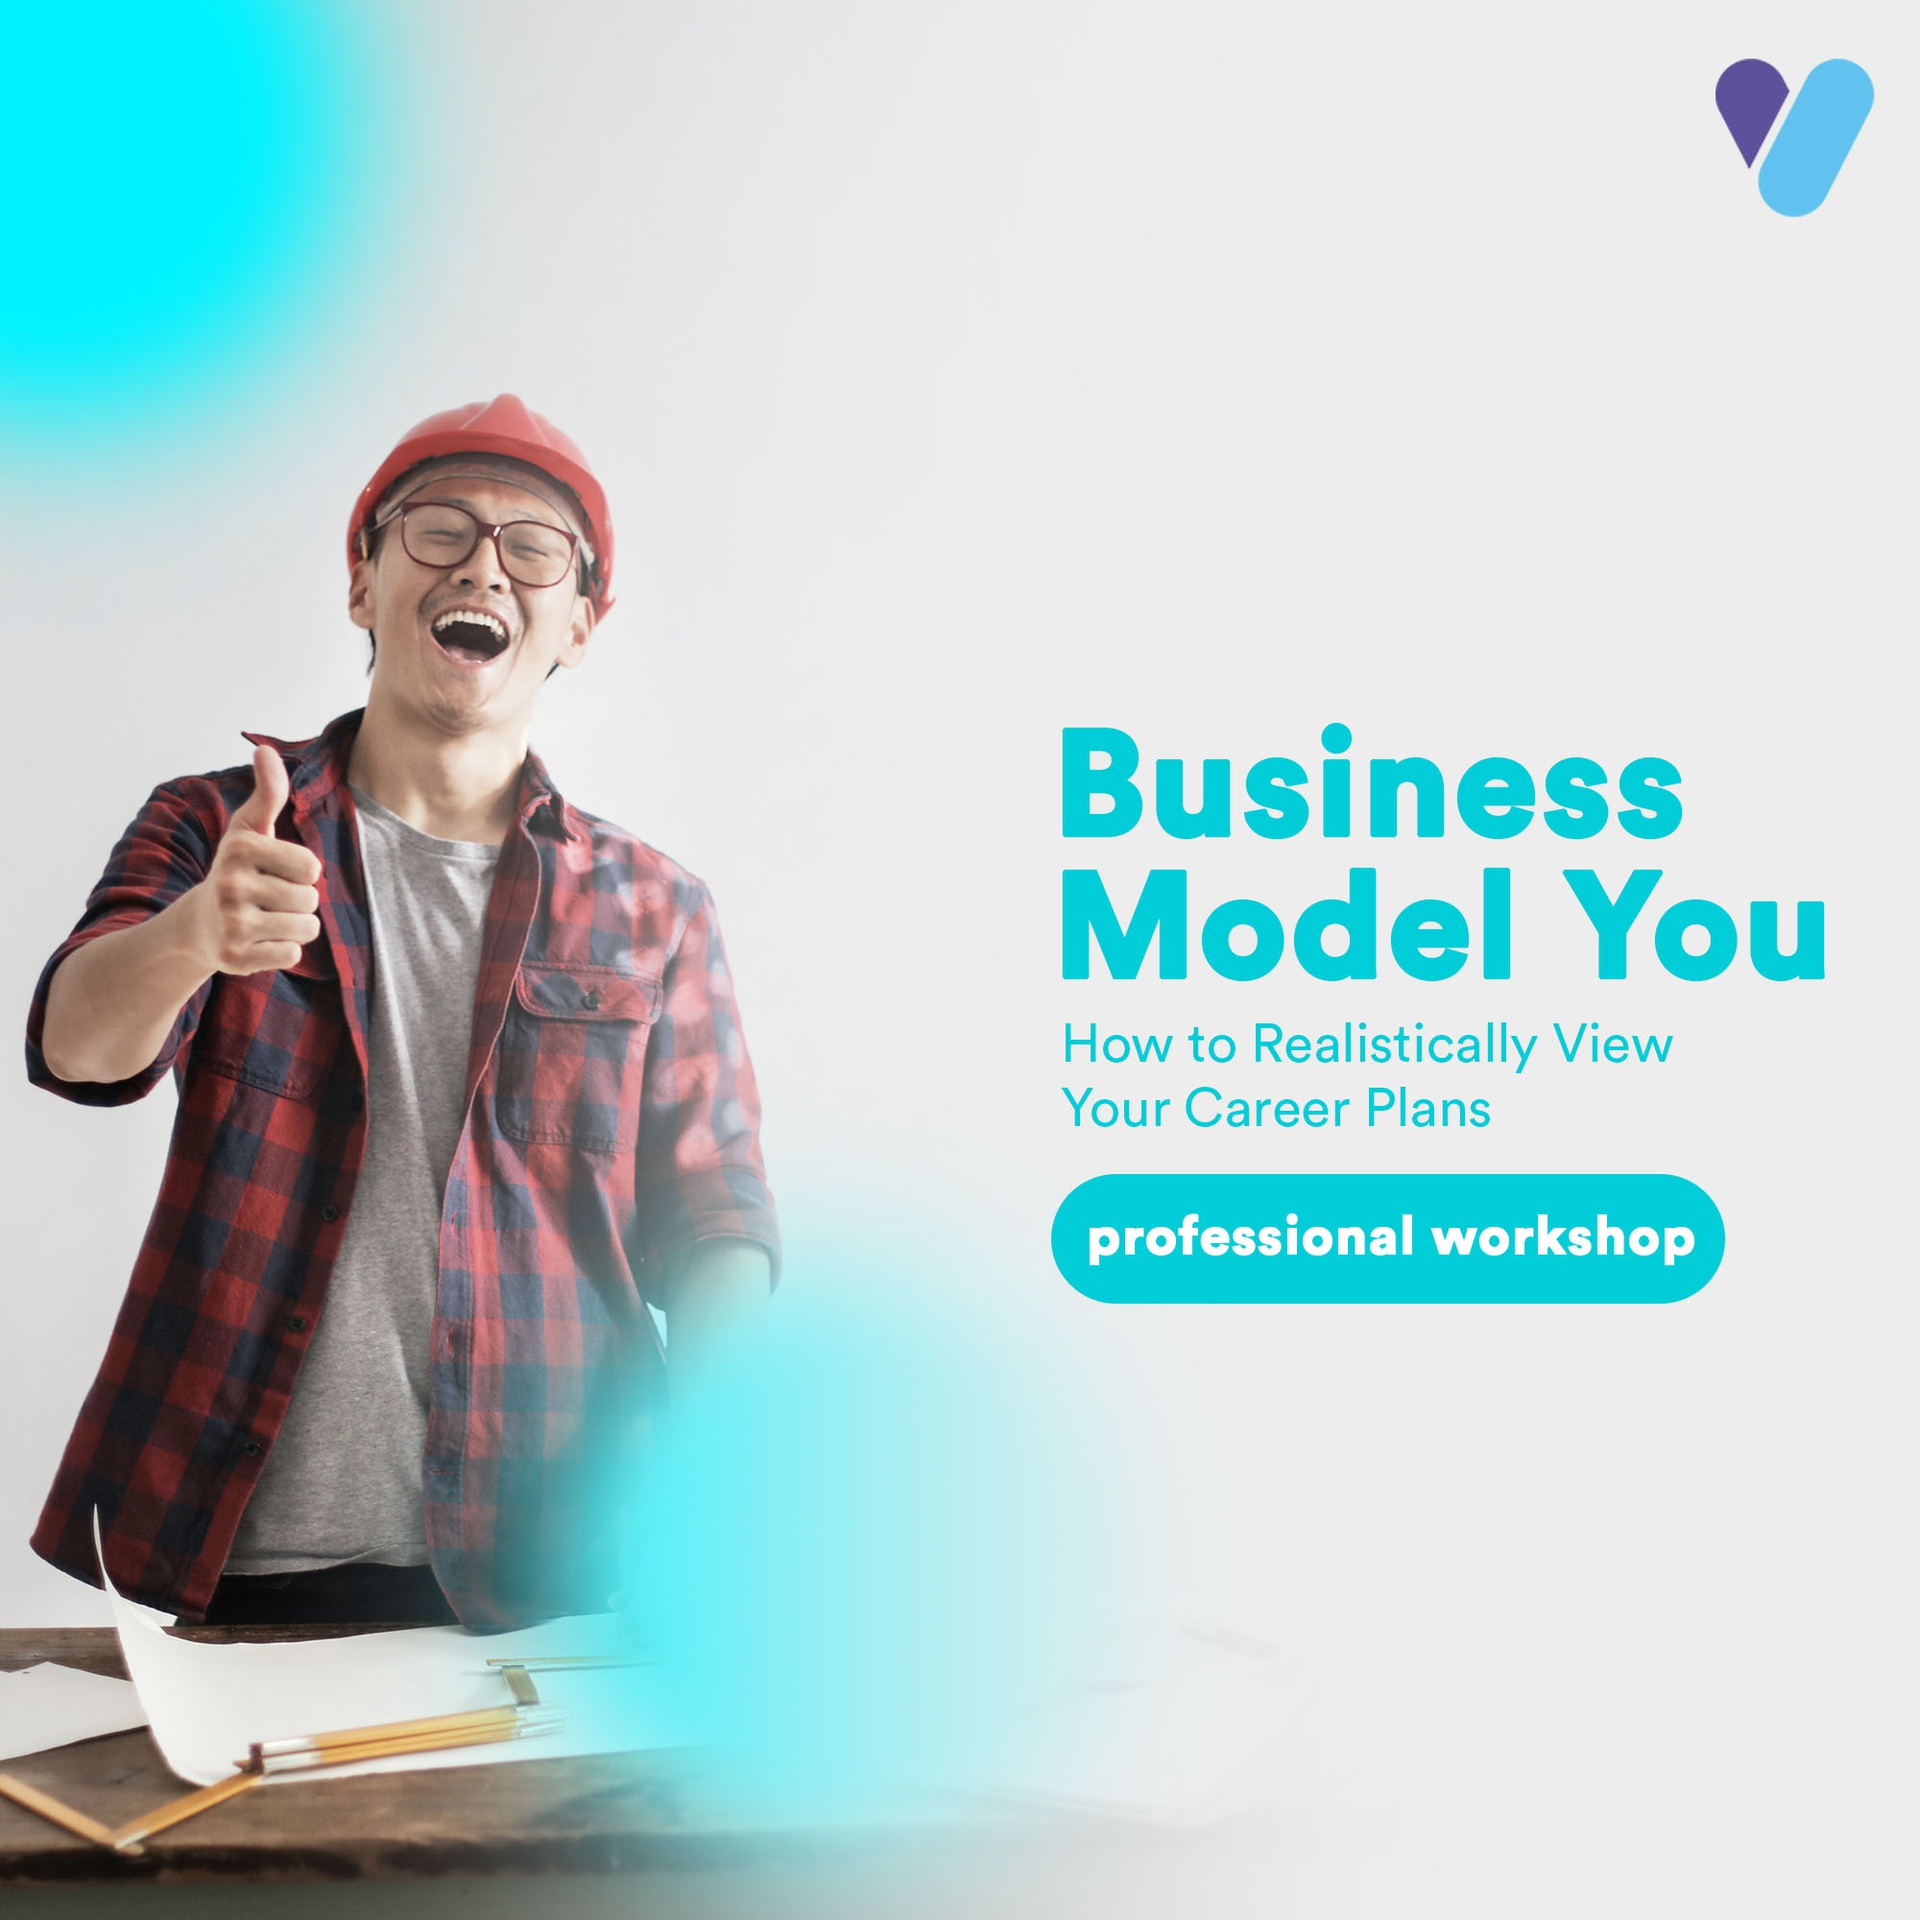 Business Model You: How to Realistically View Your Career Plans